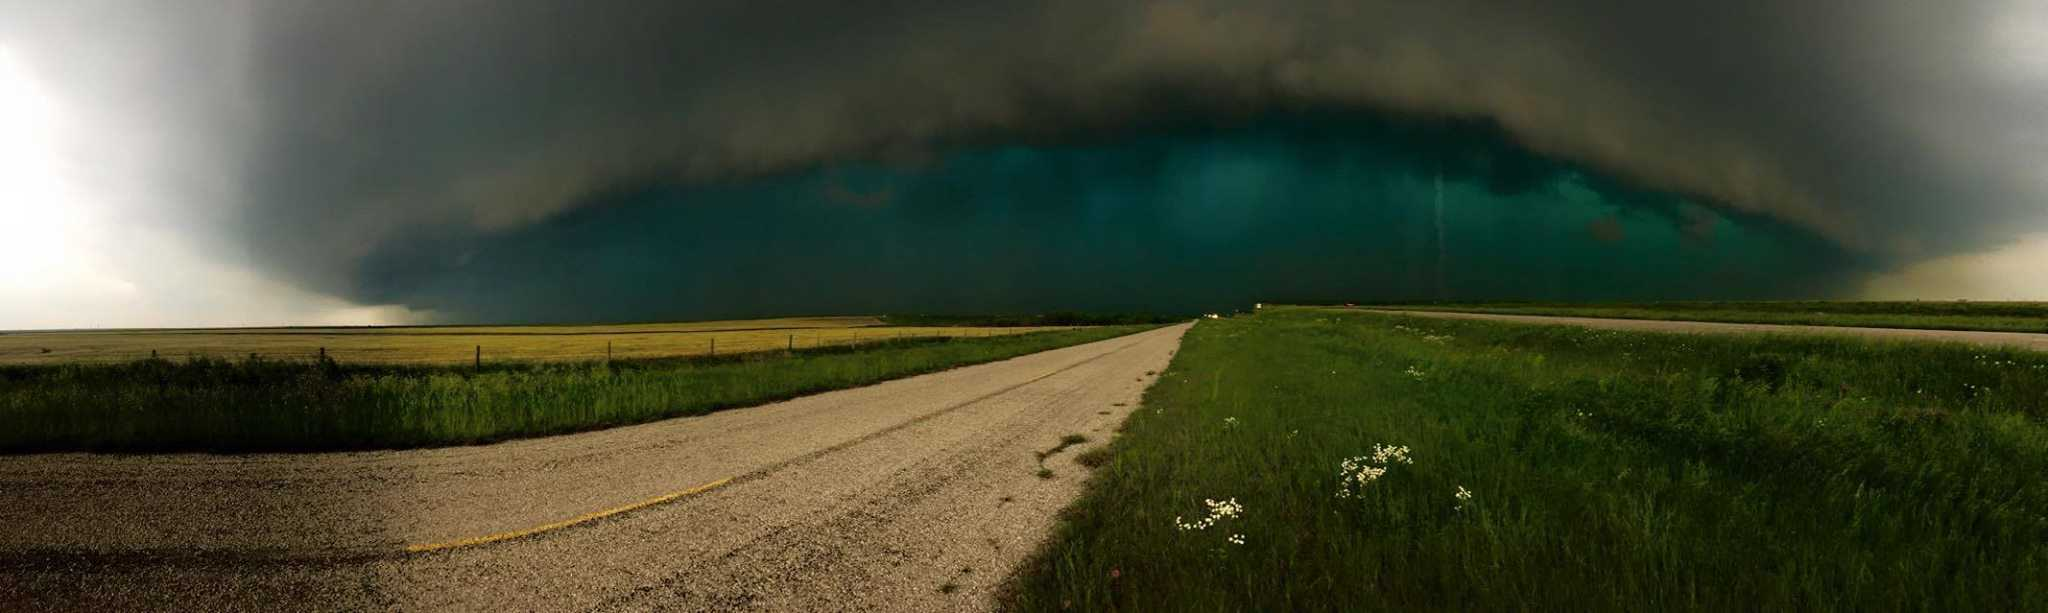 Nasty Green Supercell near Electra, TX this afternoon that pelted us with larger than Golf Ball size Hail, Gusty Winds and Torrential Rain.